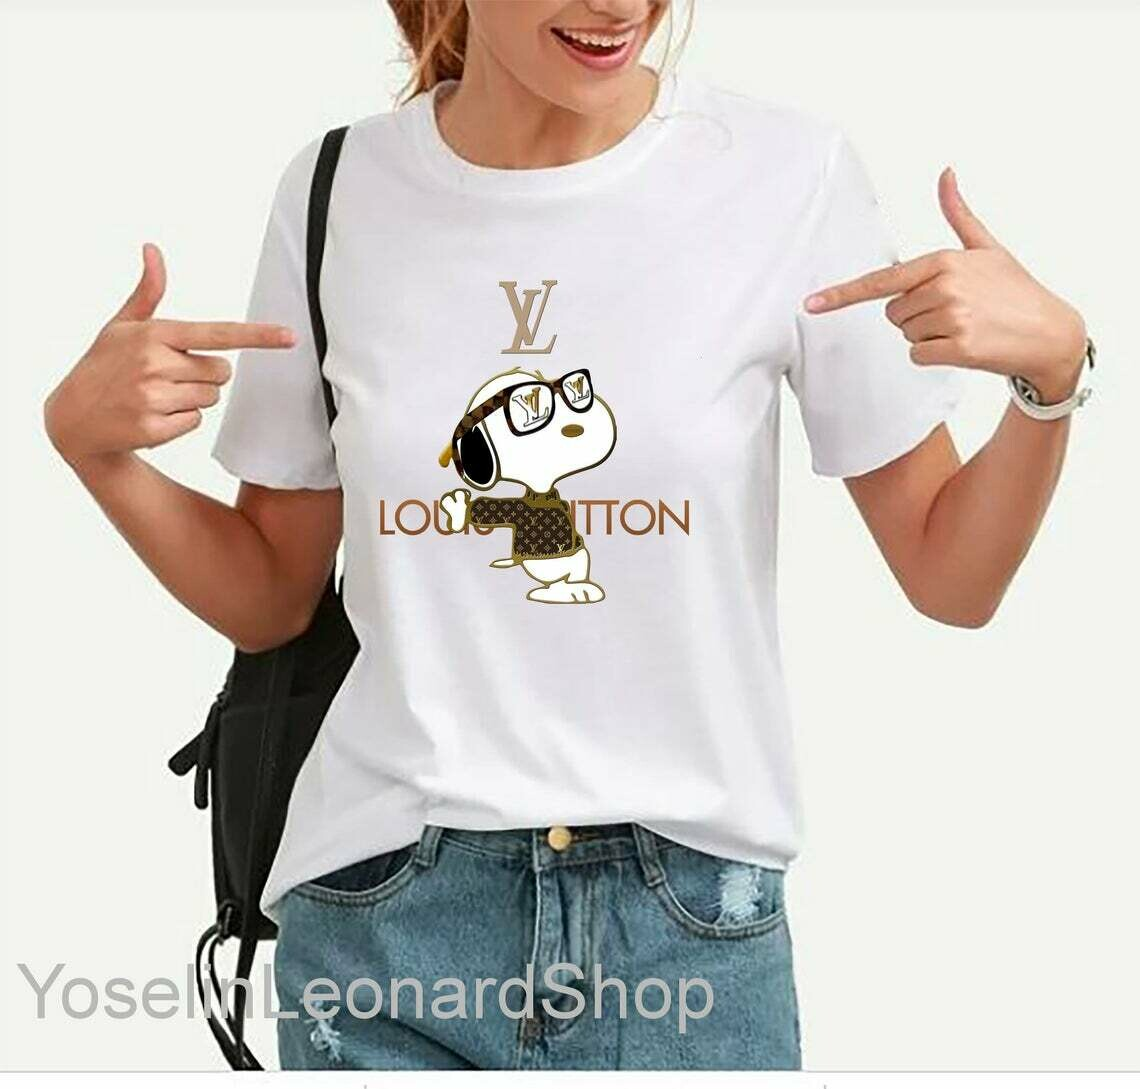 Unisex Adult Clothing,Tops Tank Tees,T-shirts, Graphic Tees, Louis Vuitton, Bleached T Shirt